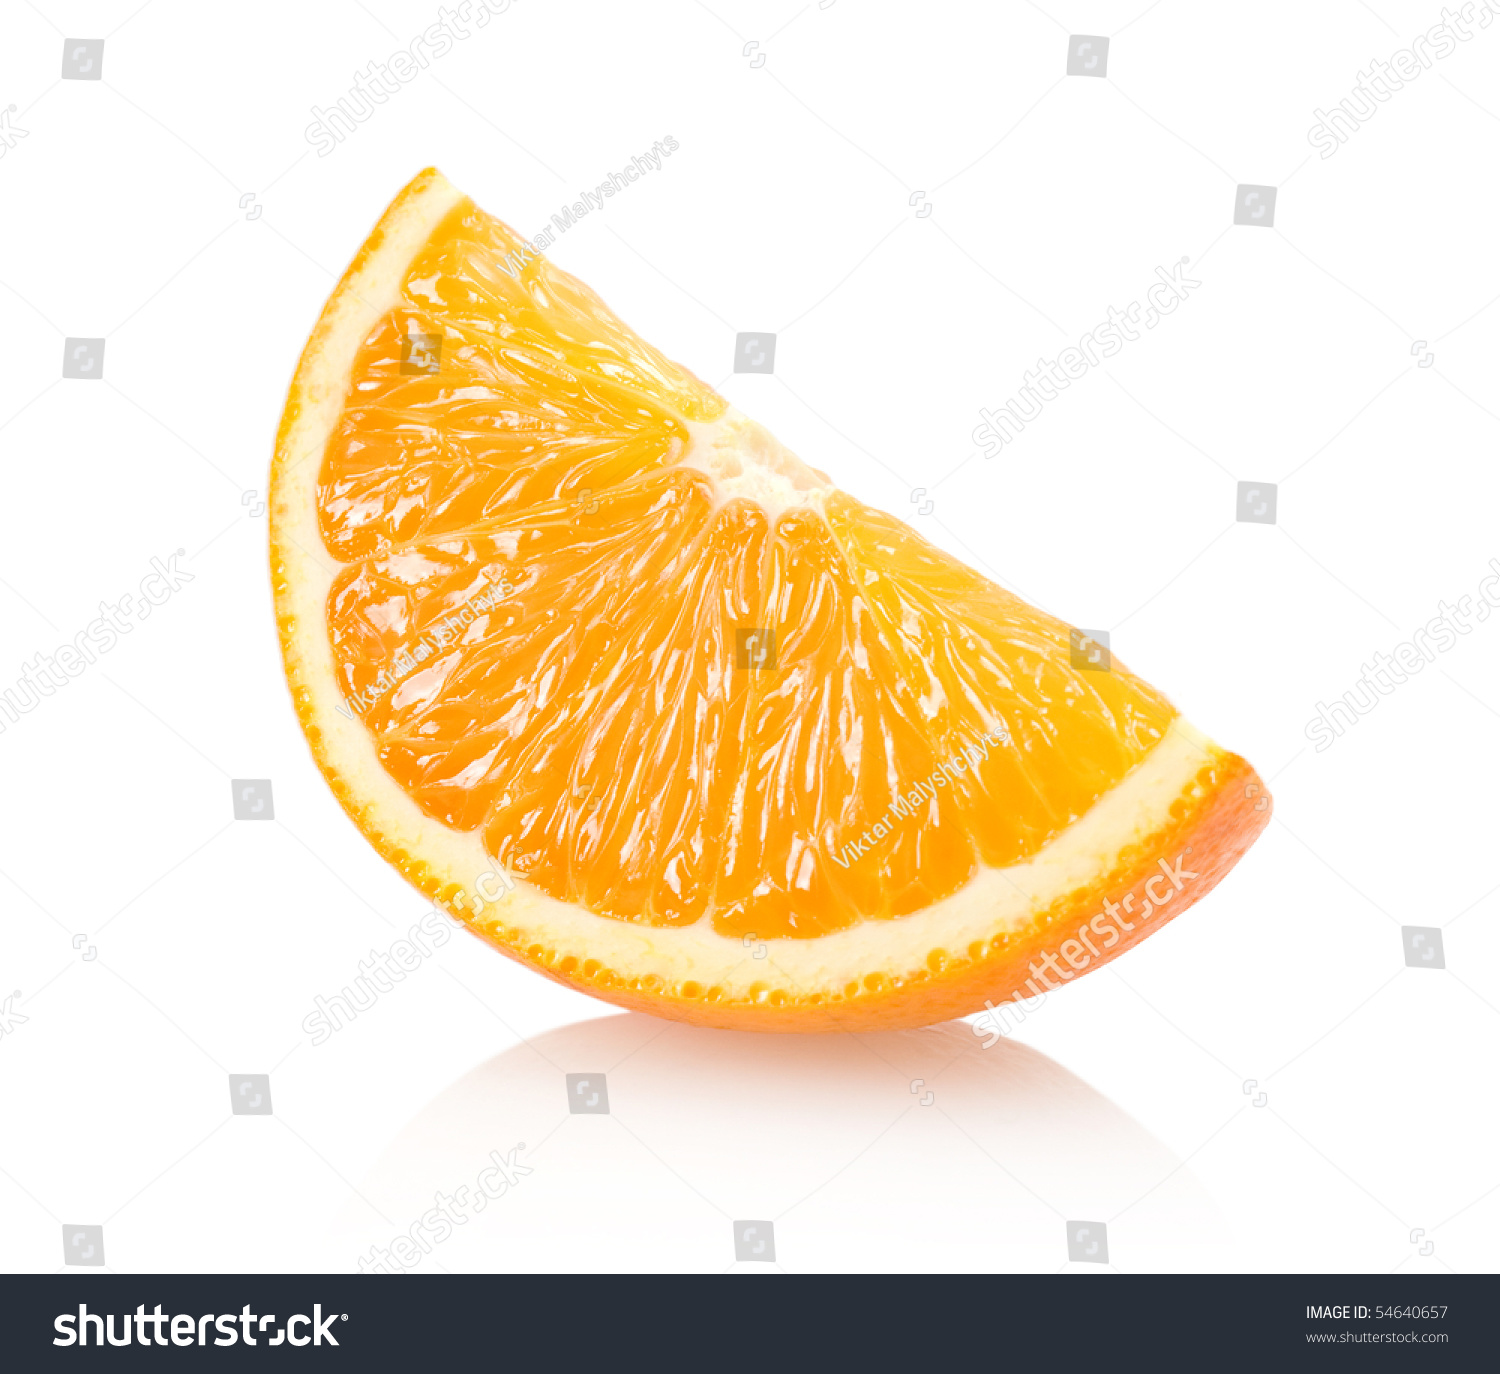 Orange Slice Stock Photo 54640657 - Shutterstock